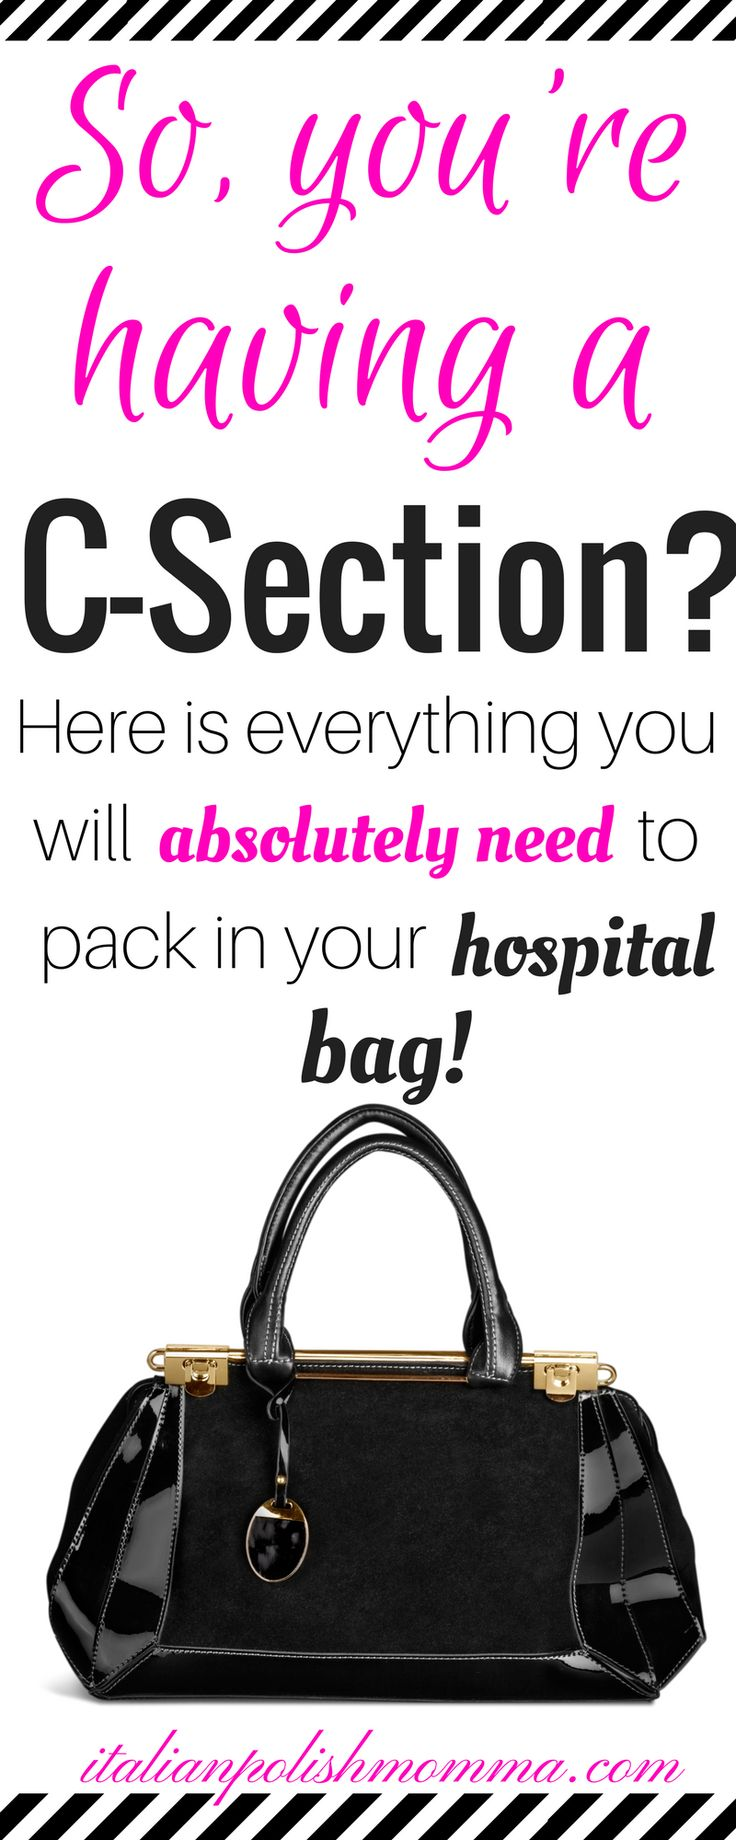 Preparing for baby during pregnancy - Are you having a scheduled c-section? Here is exactly what you will need to pack in your hospital bag for your scheduled c-section! These hospital bag must haves are essential for a smooth cesarean recovery! You'll be so happy you packed these essentials in your hospital bag and will be prepared for your scheduled c-section baby! #scheduledcsection #hospitalbag #csection #cesarean #labordelivery #pregnancy